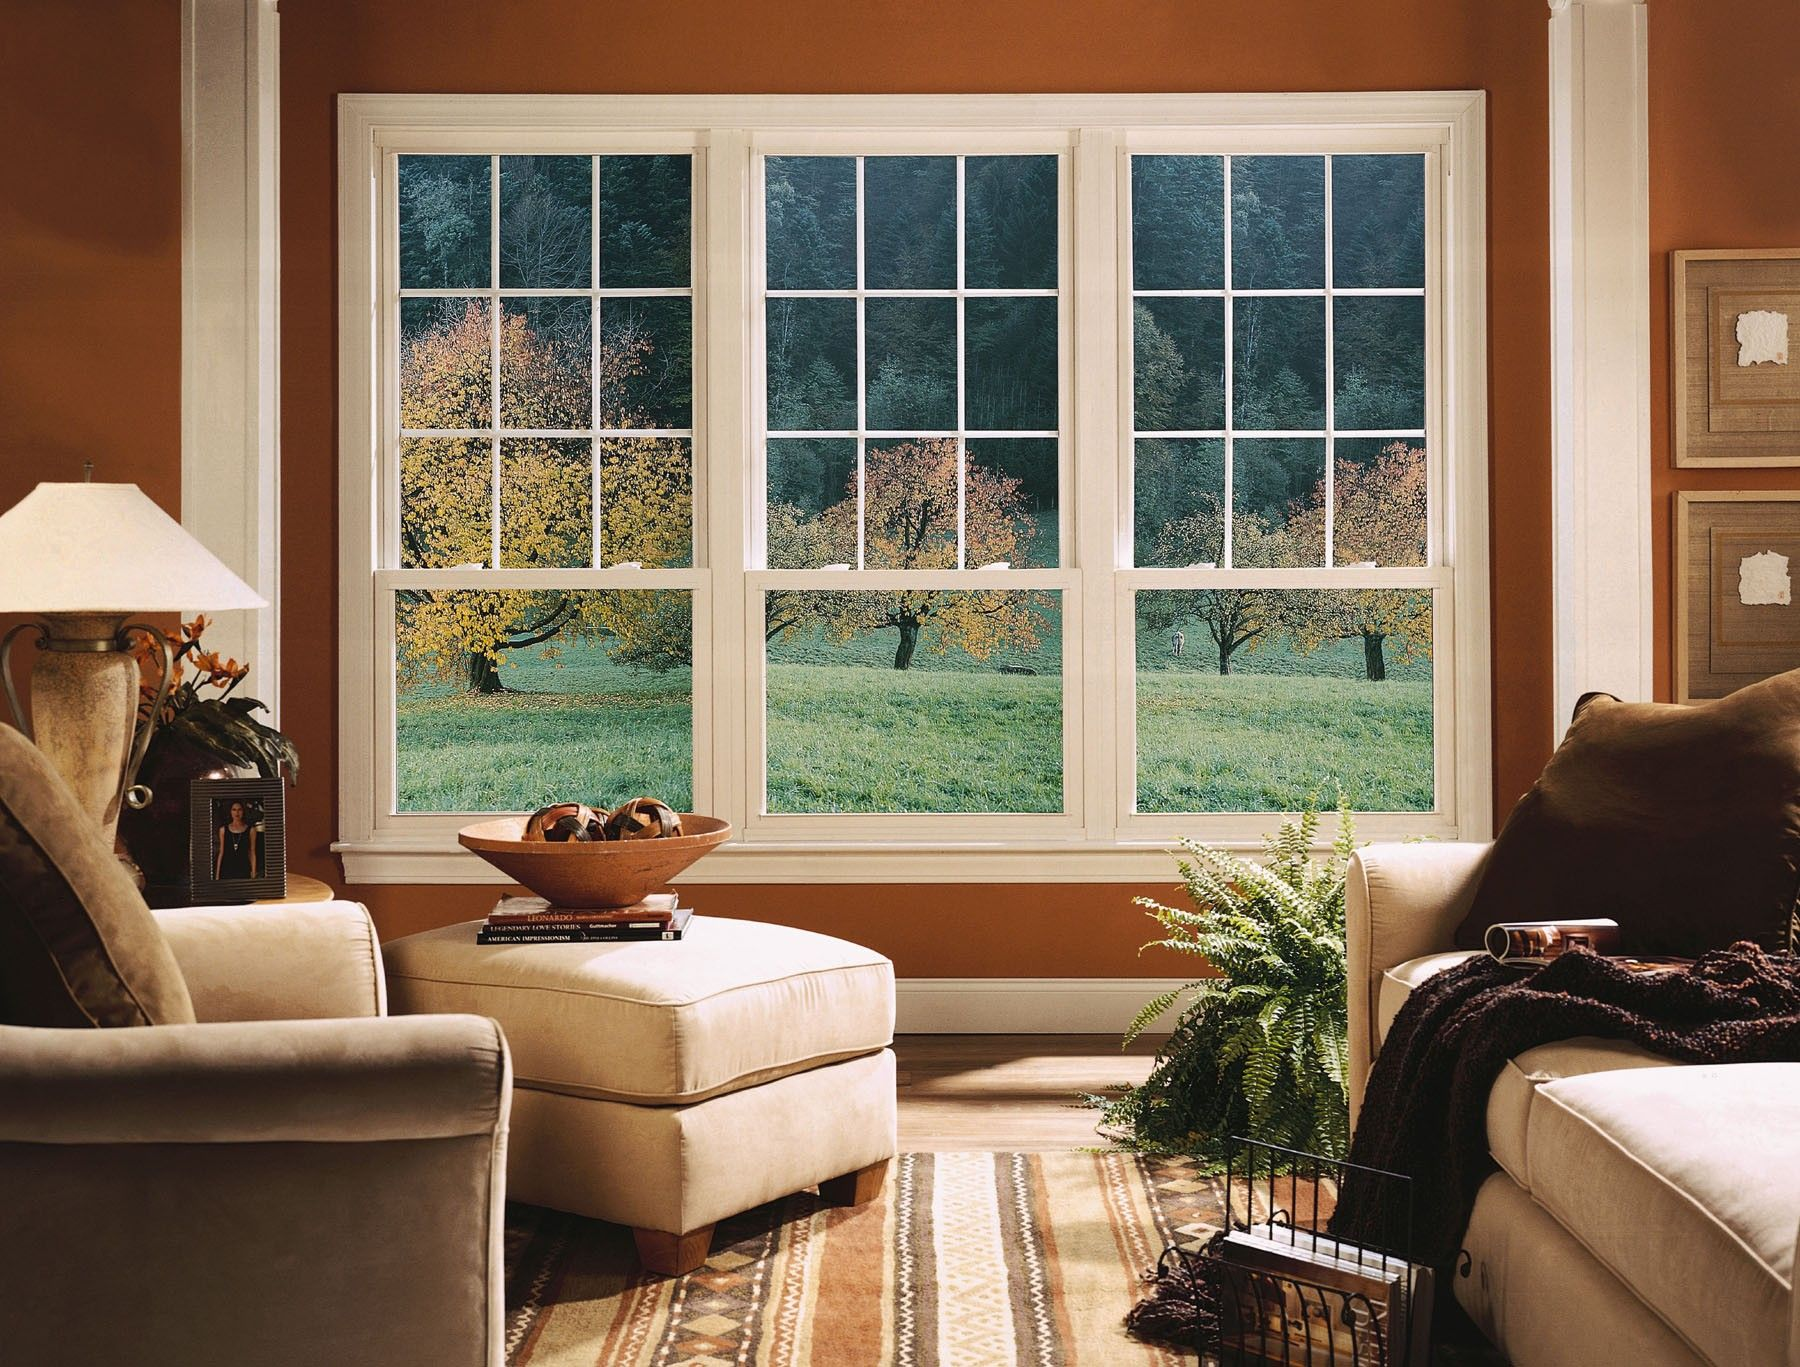 Create A Beautiful View With The Right Windows In Your Home